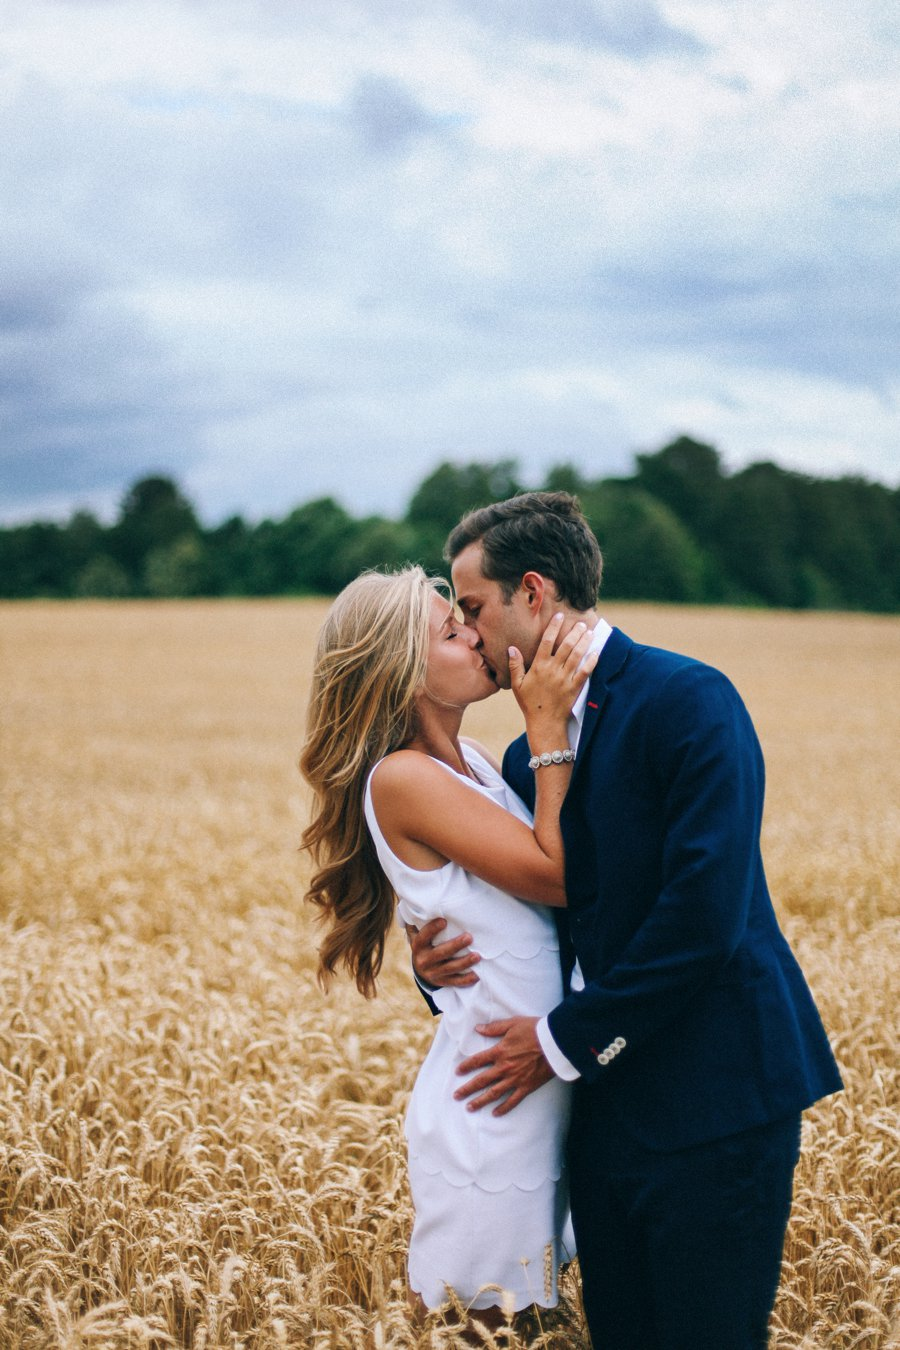 engagement-pose-kiss-in-a-field http://itgirlweddings.com/how-one-couple-nailed-their-engagement-session/